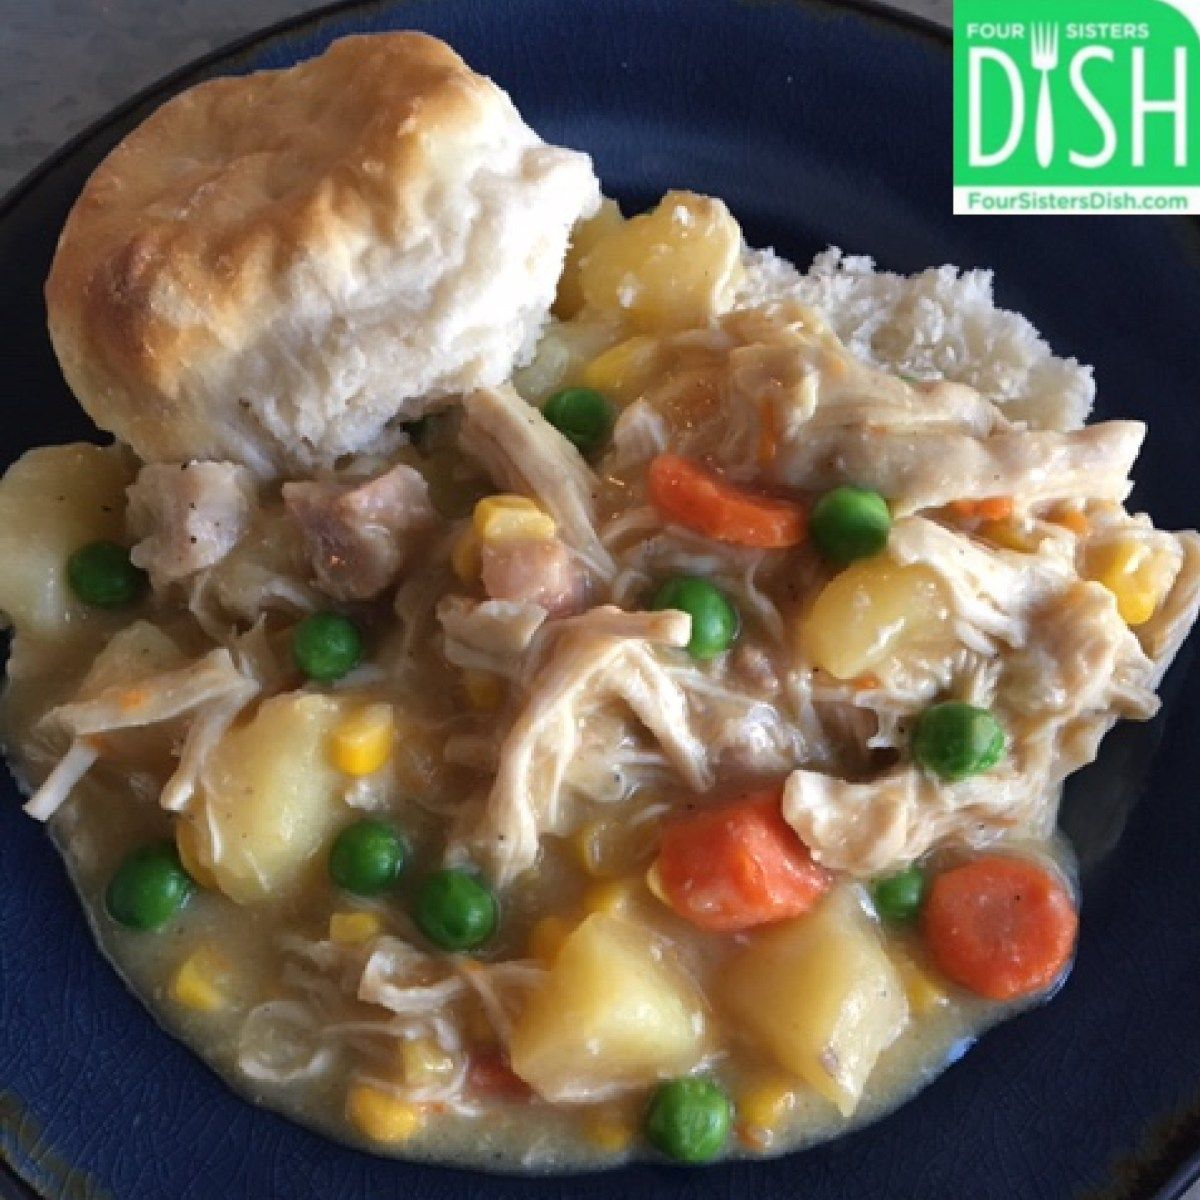 Crockpot Recipes, Pot Pie